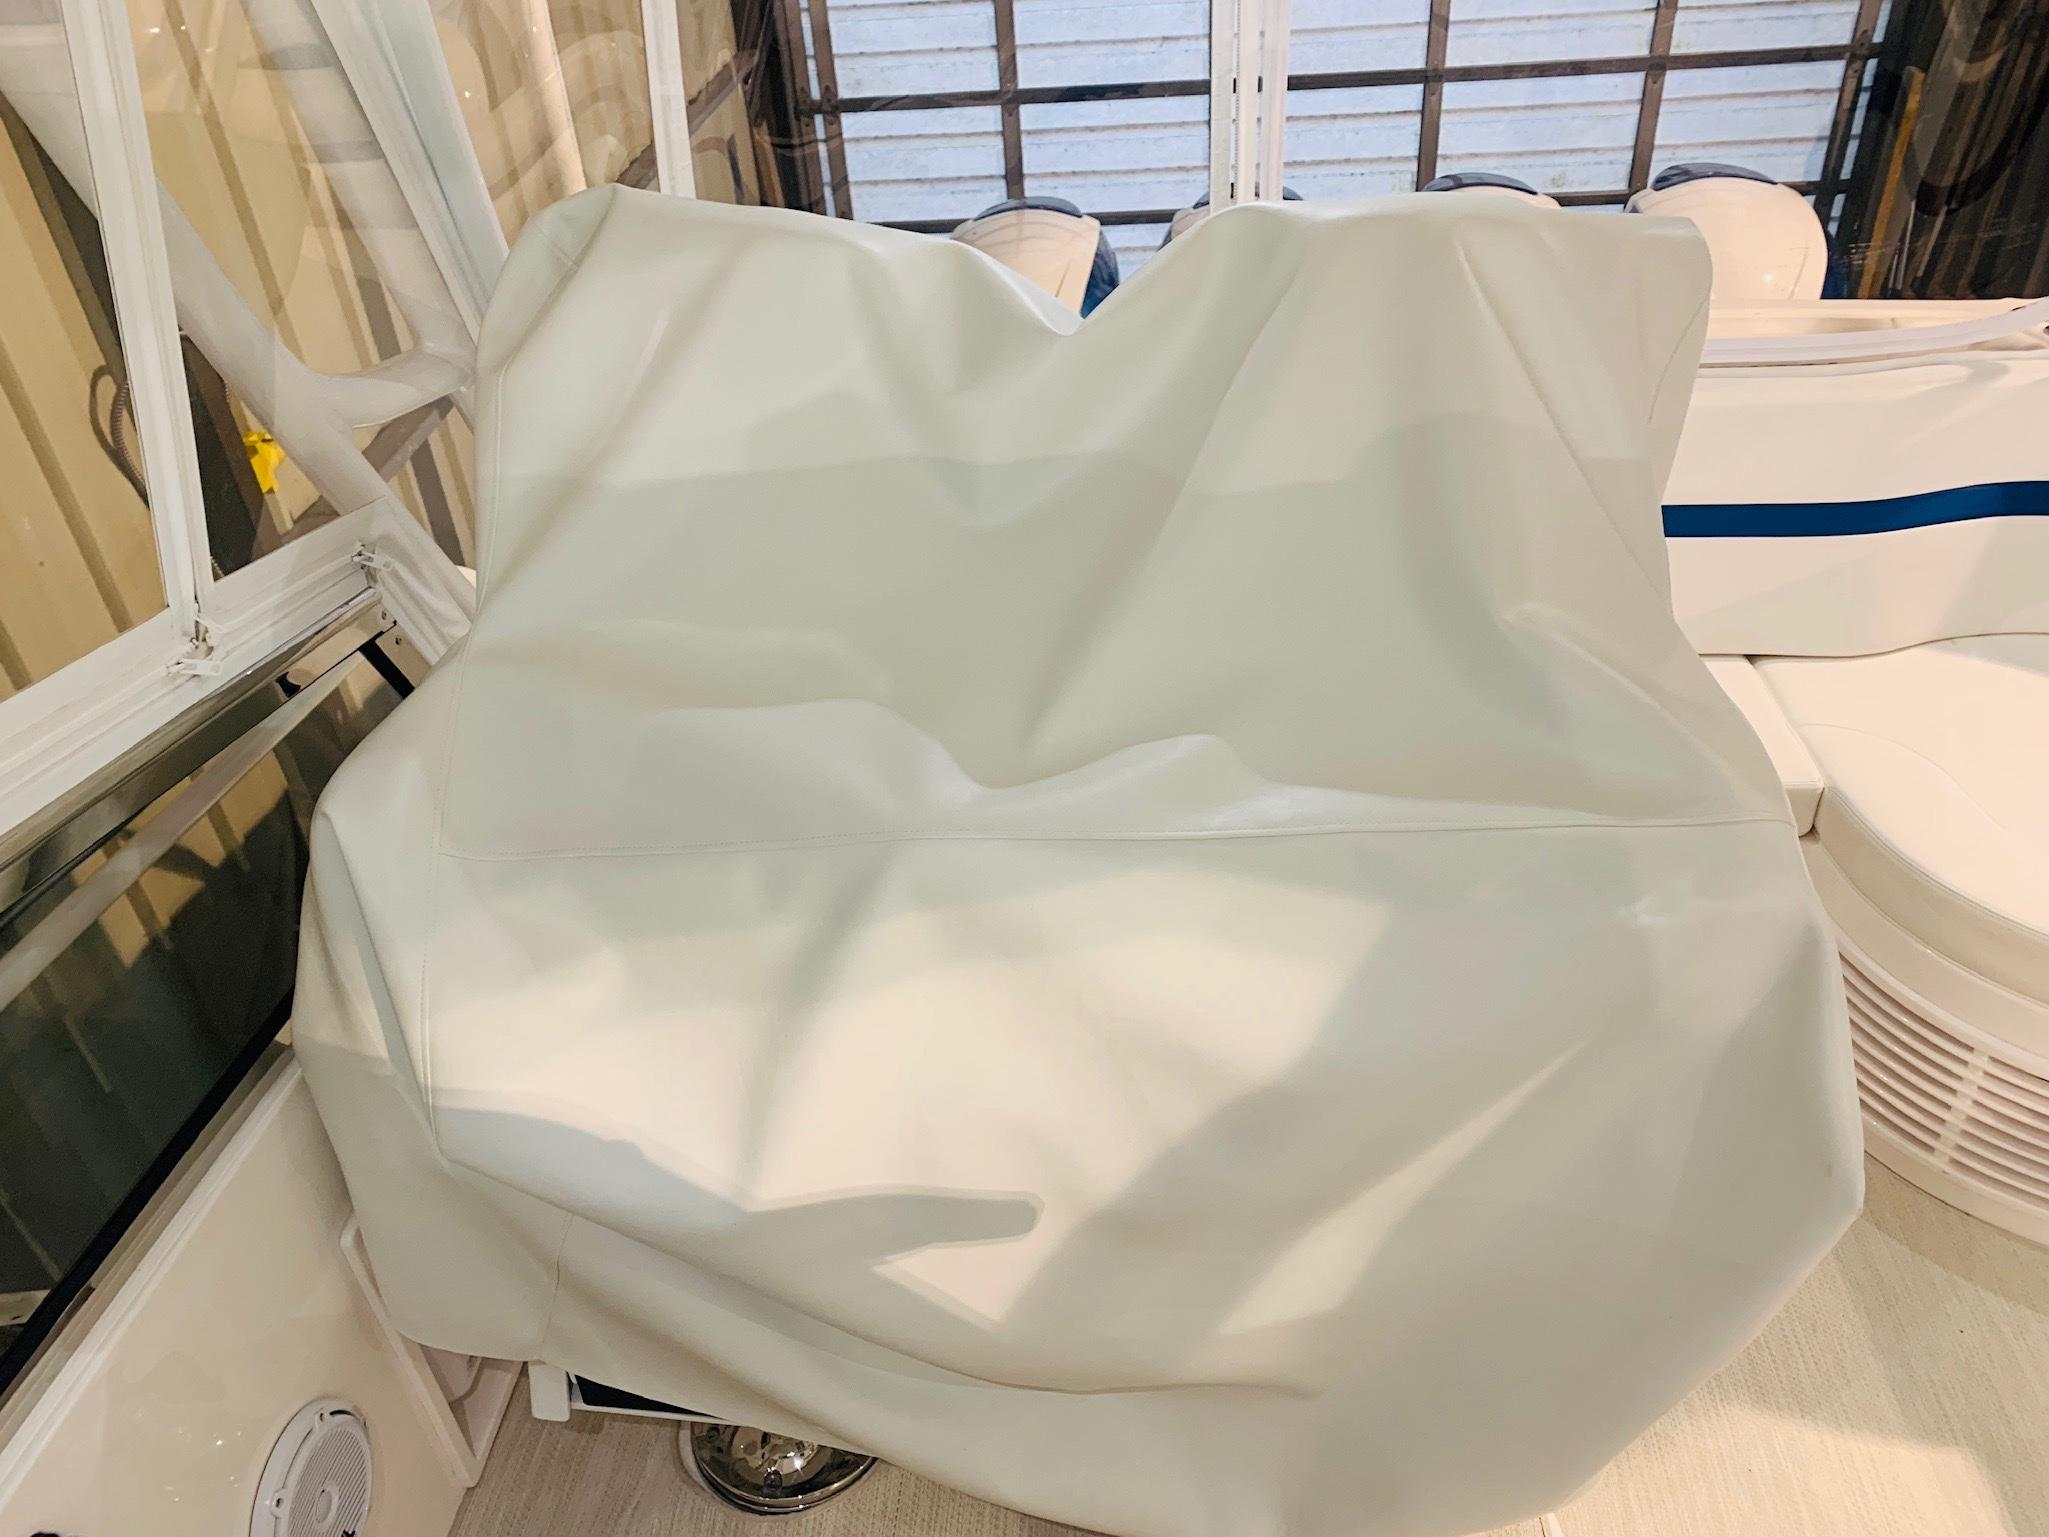 48 Intrepid Helm Seats - Covered